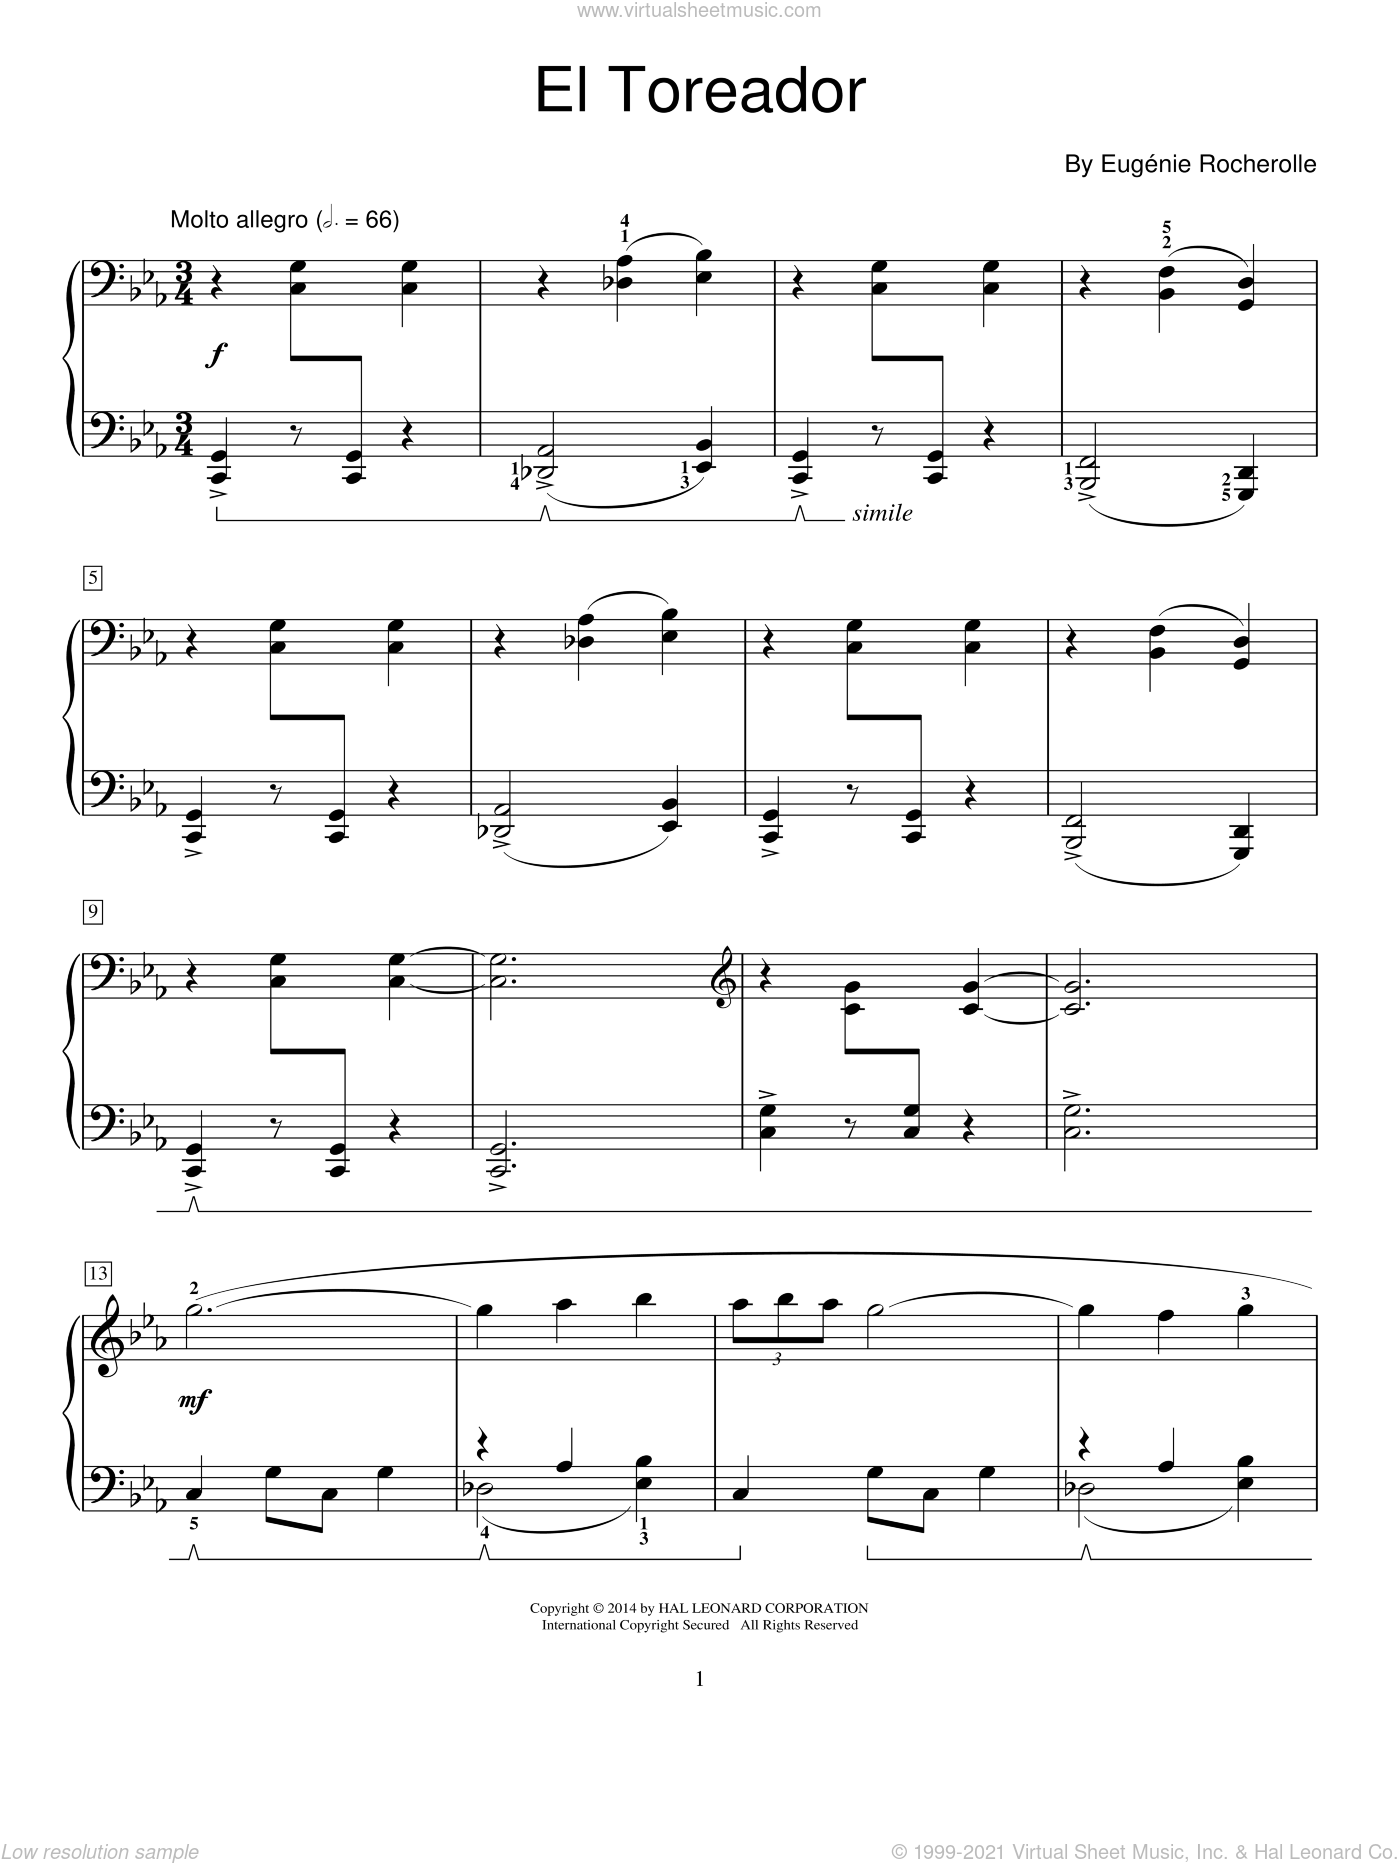 El Toreador sheet music for piano solo (elementary) by Eugenie Rocherolle